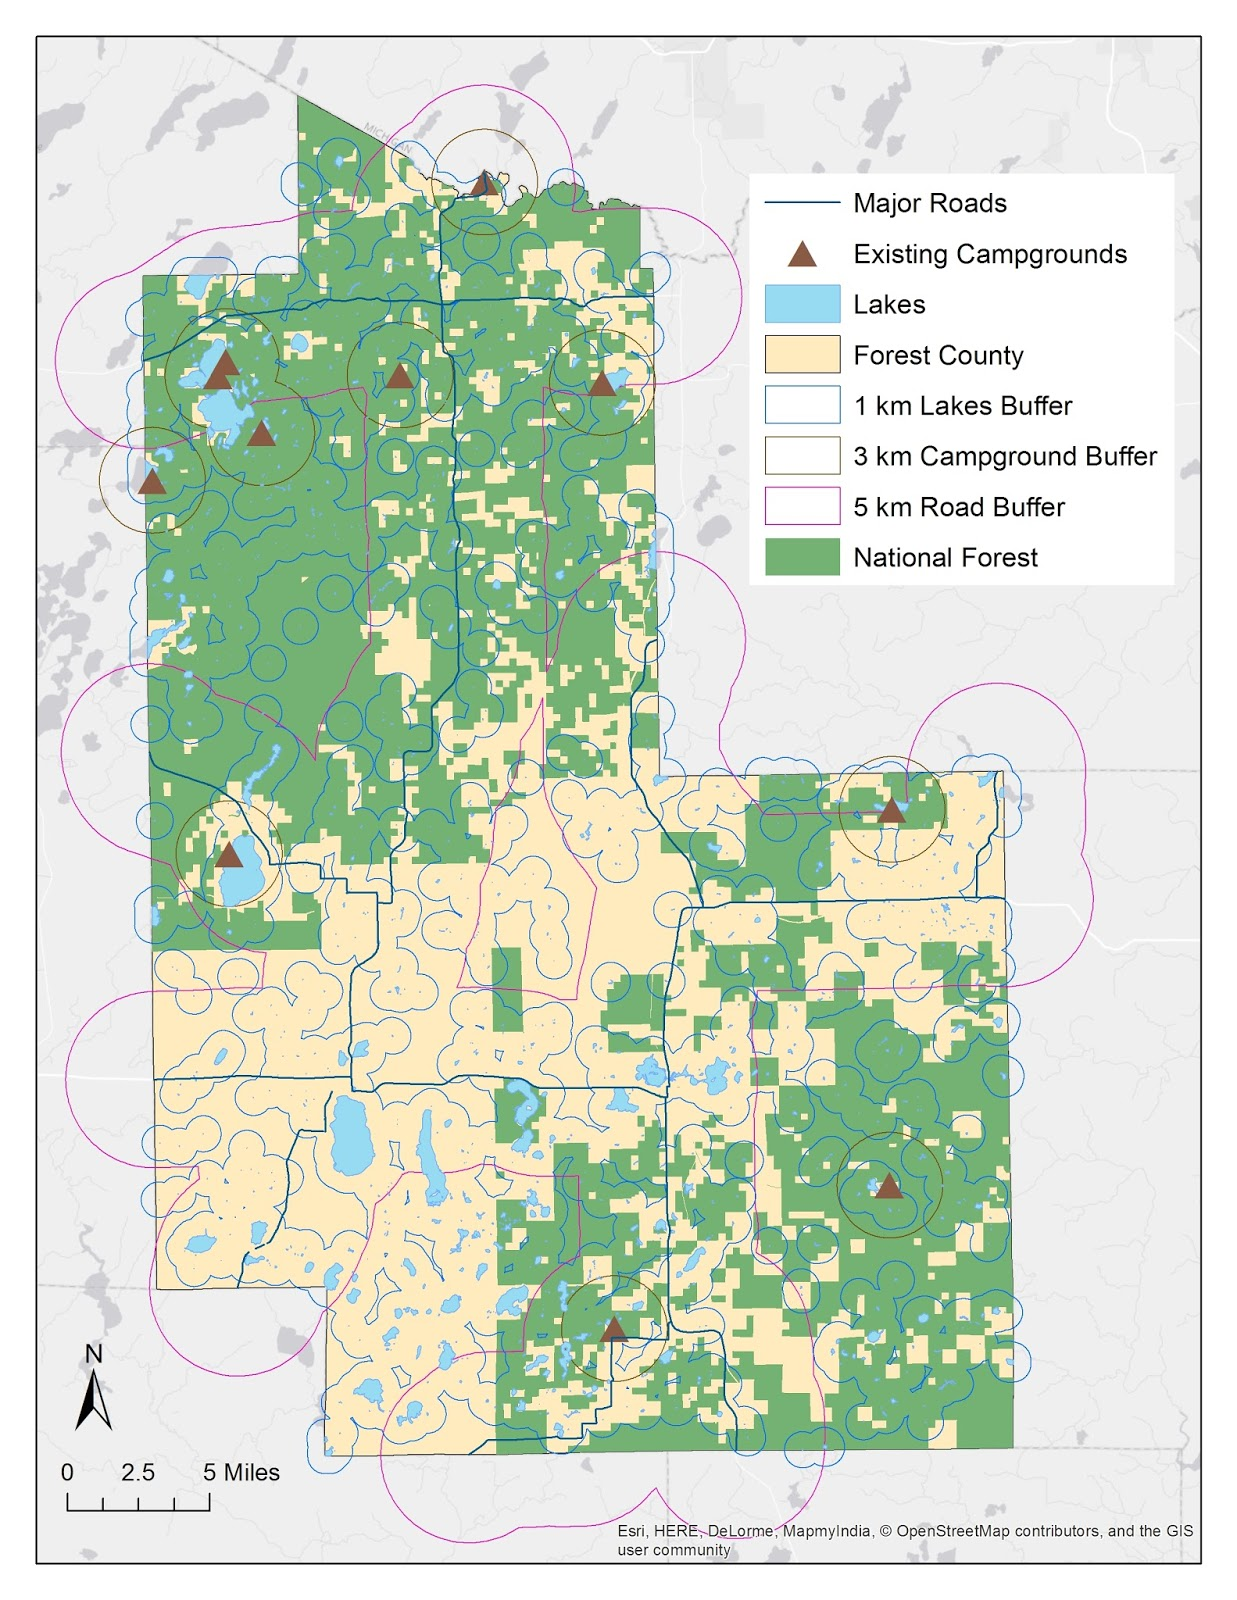 map showing each of the different buffers the existing campgrounds lakes major roads and the national forest within forest county wisconsin